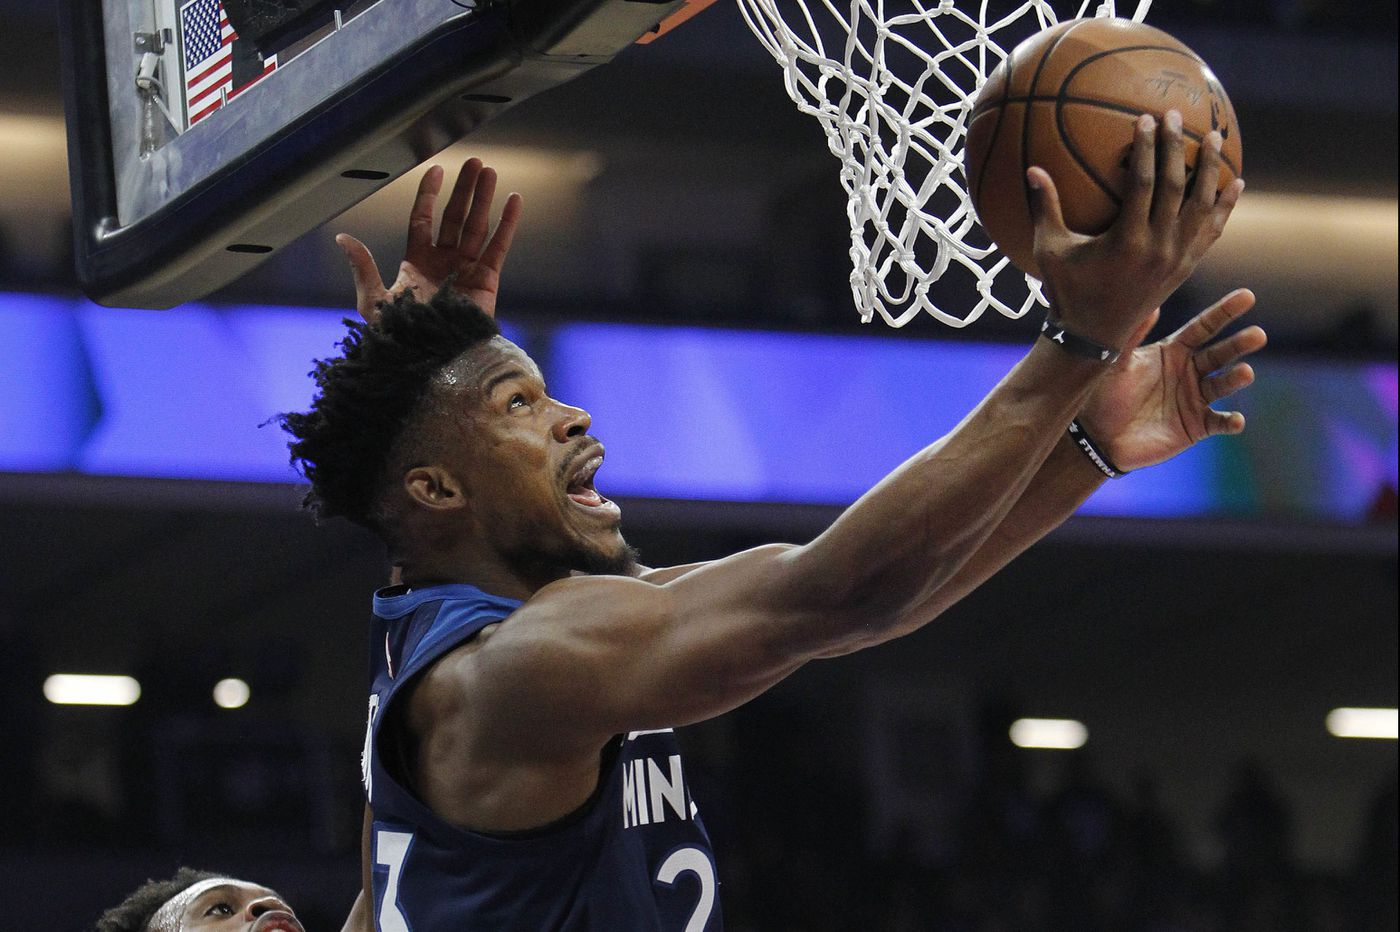 Butler's agenda hurt Timberwolves, owner Taylor says